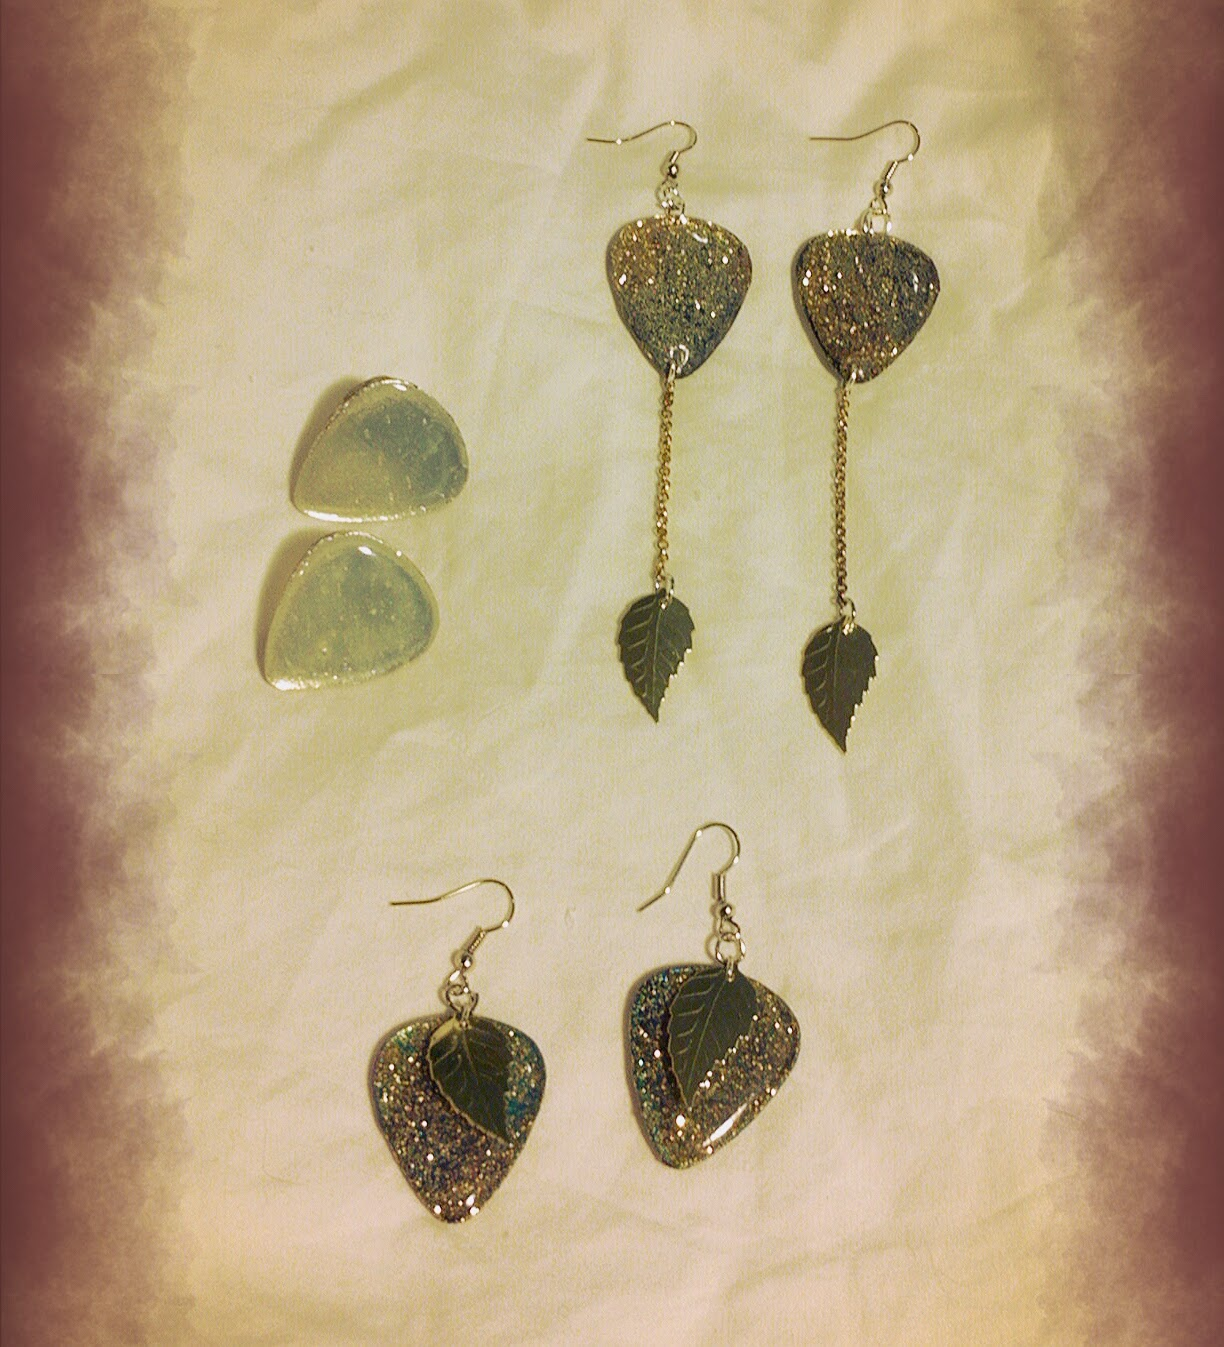 Guitar Pick Earrings featuring glitter & gold leaf